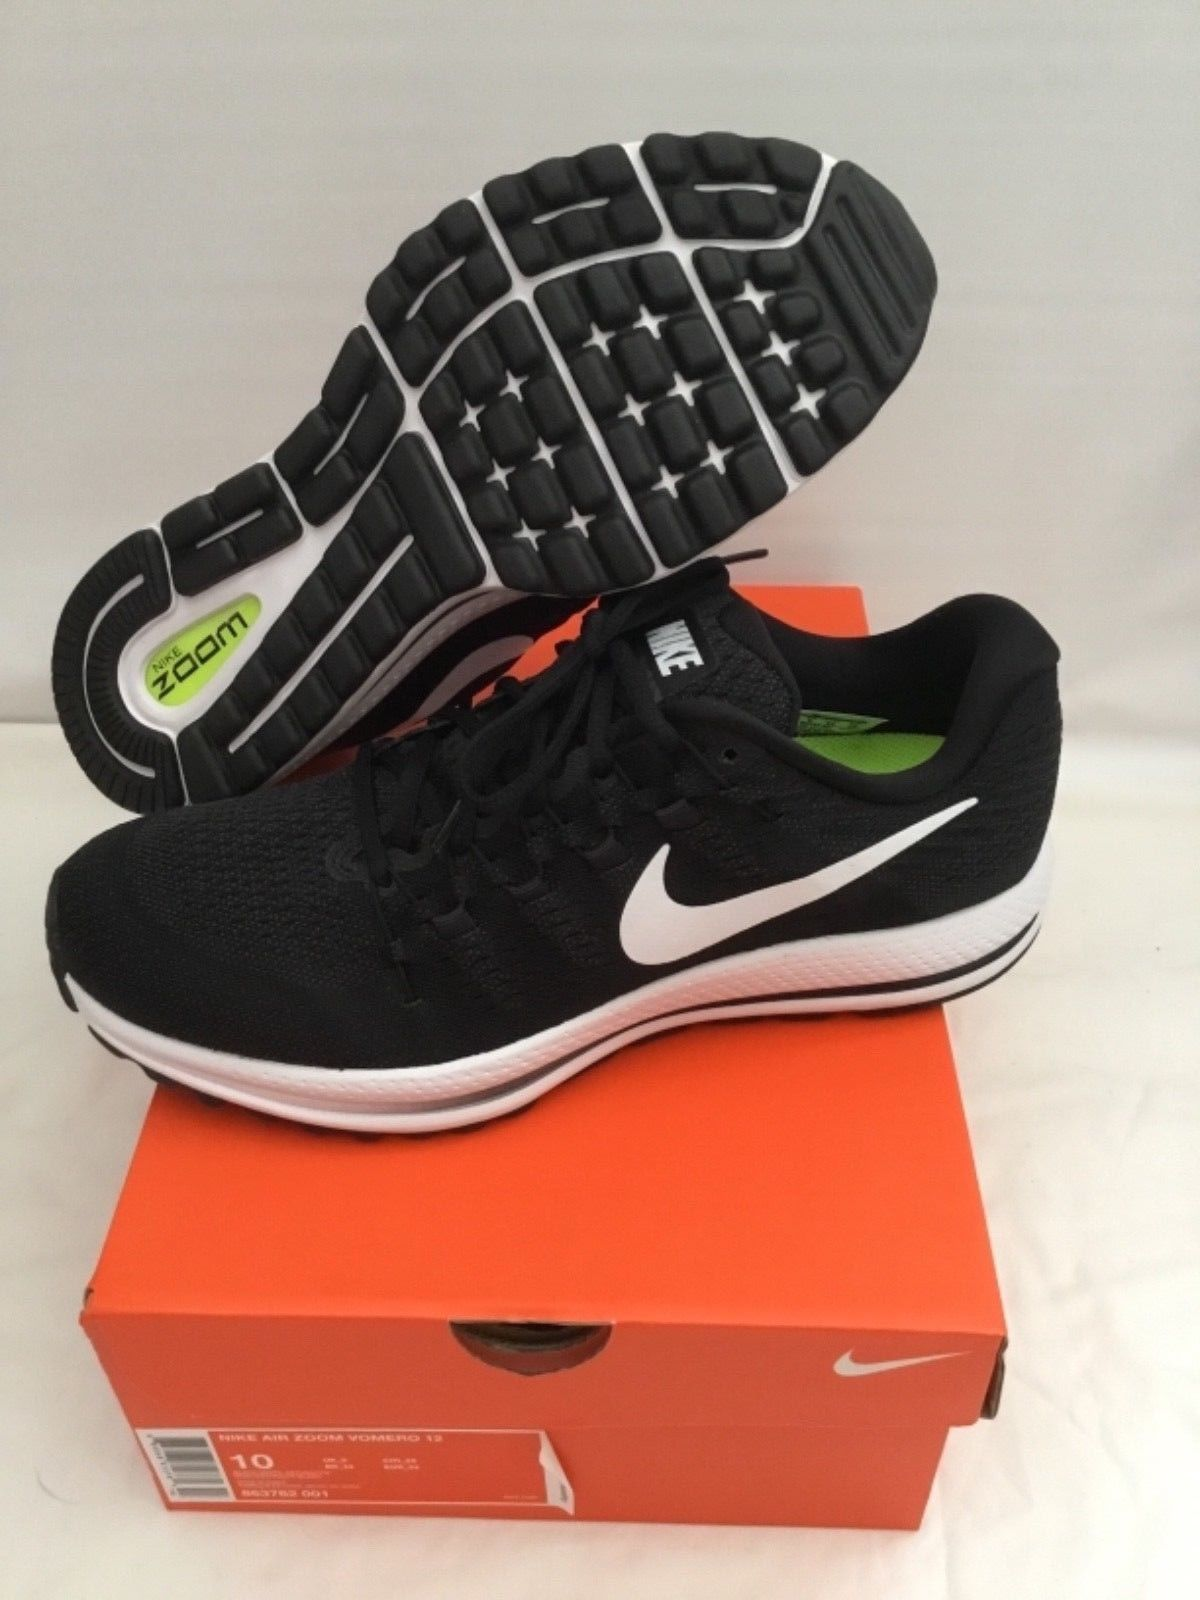 e32ab153efd1 Nike Men s Air Zoom Vomero 12 Running Shoes and similar items. 57